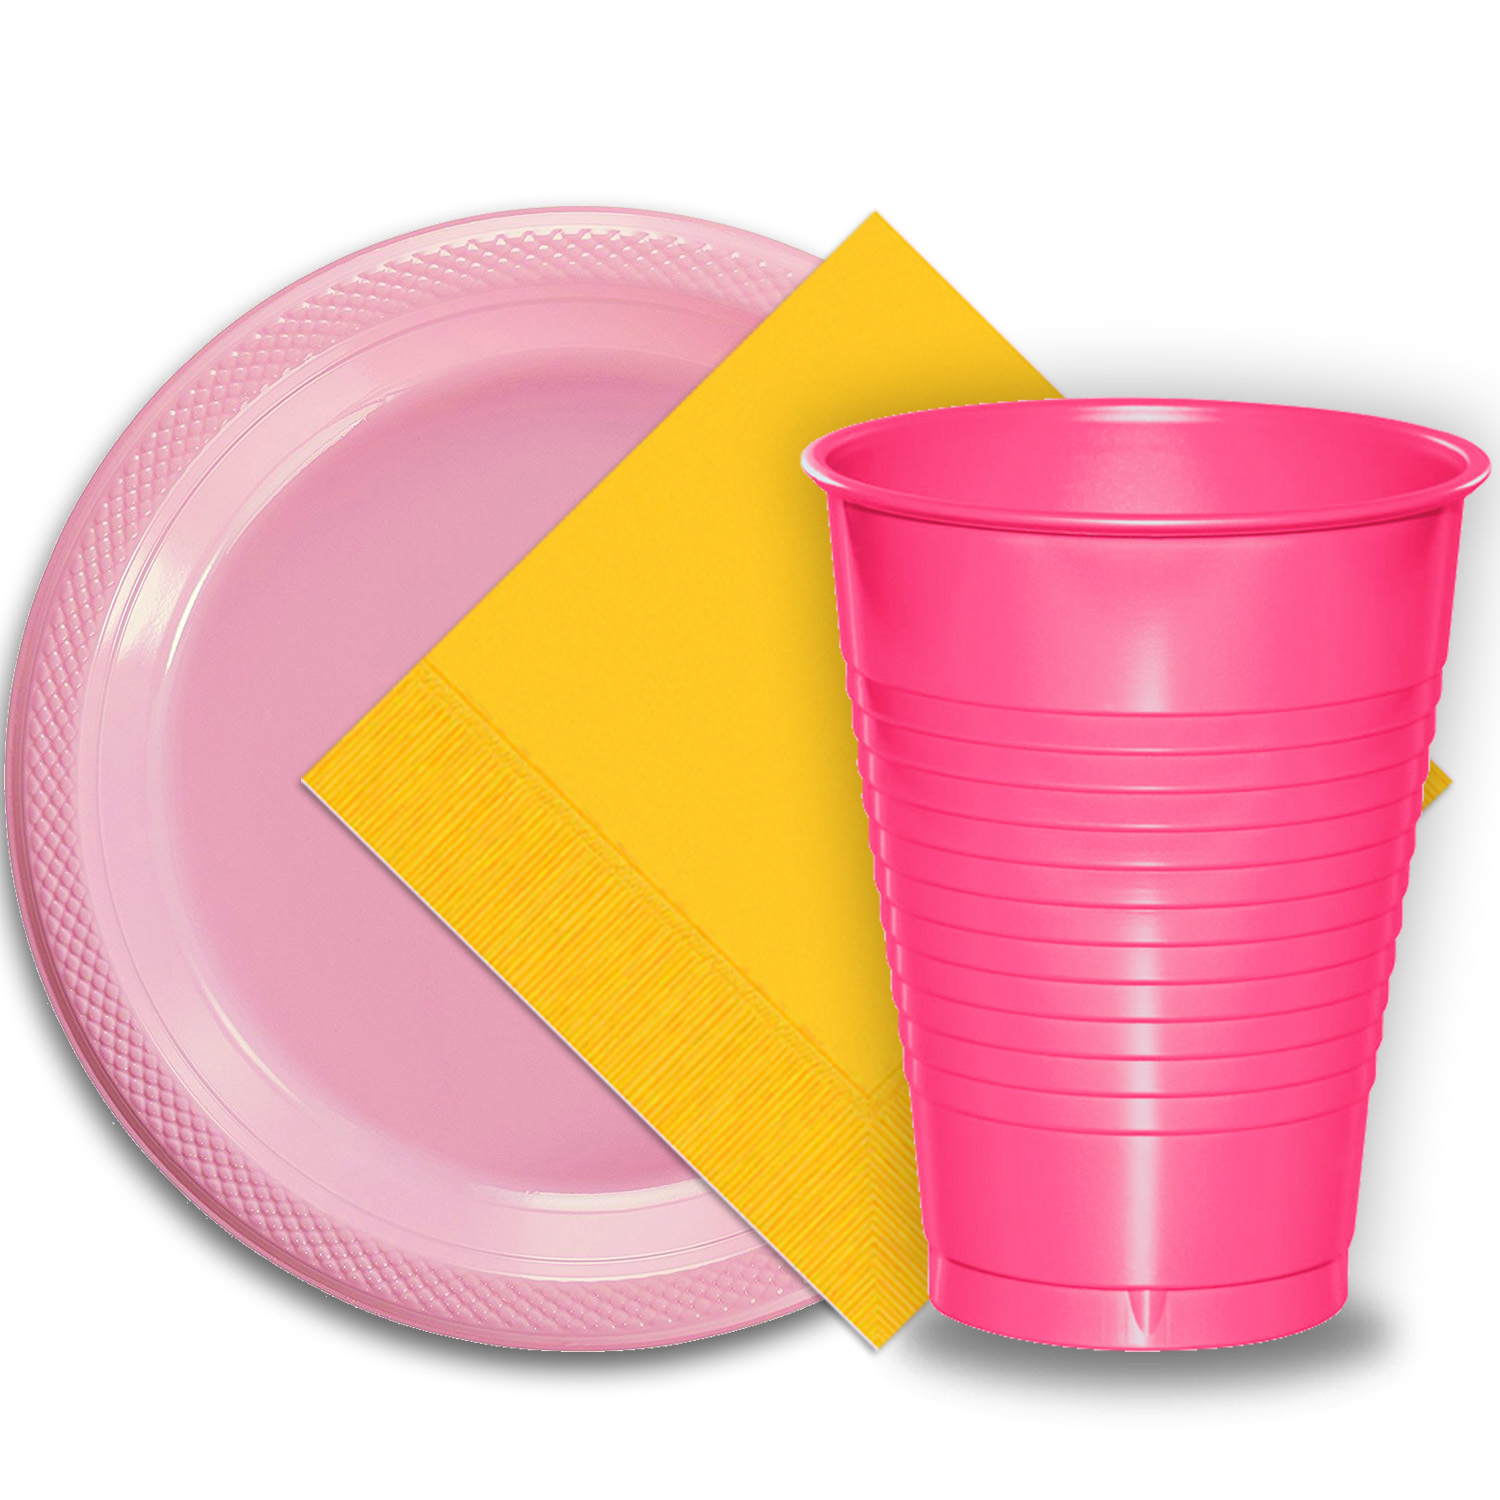 """50 Pink Plastic Plates (9""""), 50 Hot Pink Plastic Cups (12 oz.), and 50 Yellow Paper Napkins, Dazzelling Colored Disposable Party Supplies Tableware Set for Fifty Guests."""